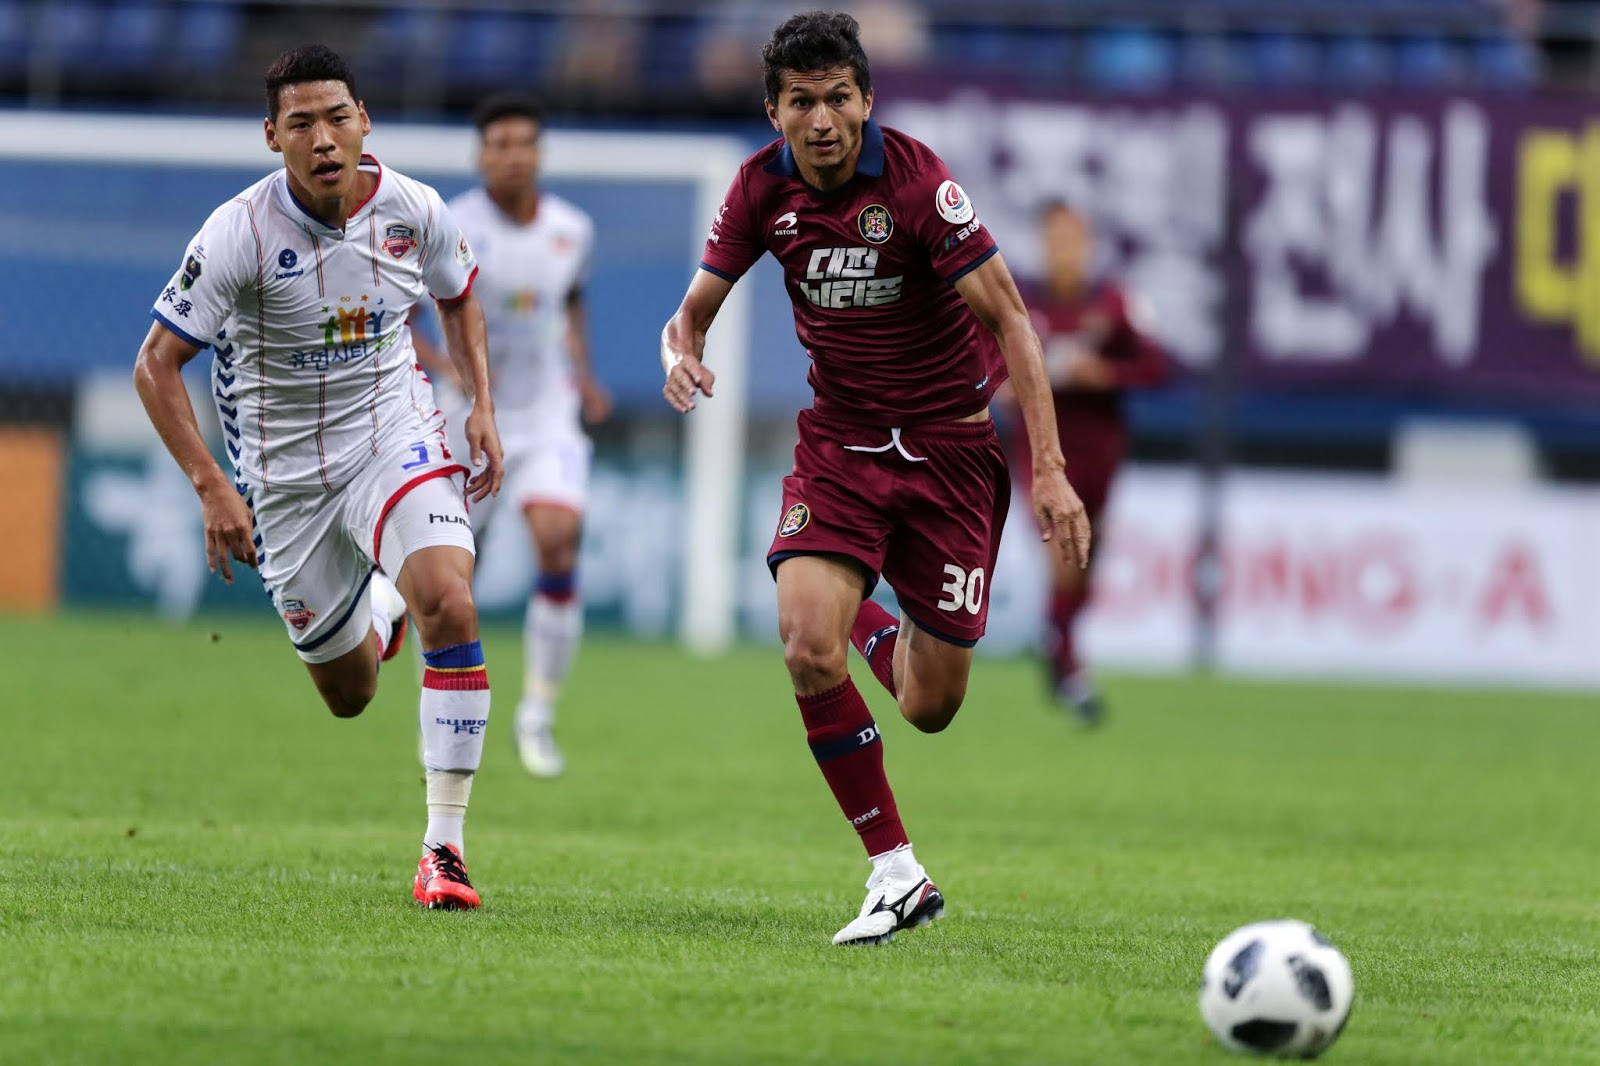 Preview: Daejeon Citizen vs Ansan Greeners K League 2